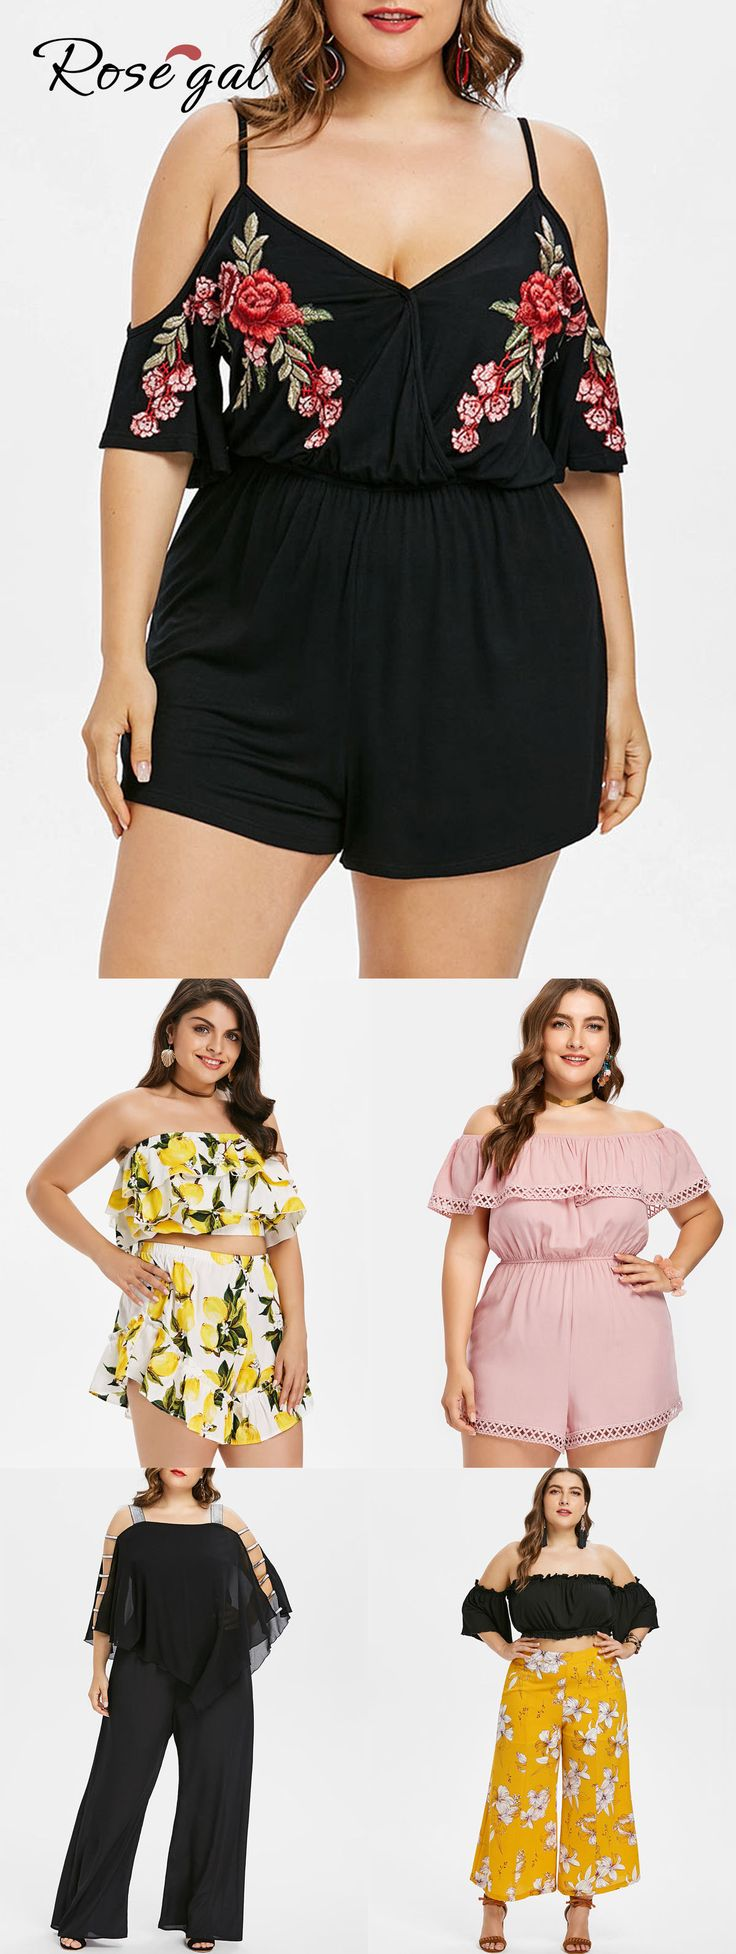 Free shipment worldwide, up to 70% off, ROSEGAL plus size rompers and jumpsuits …